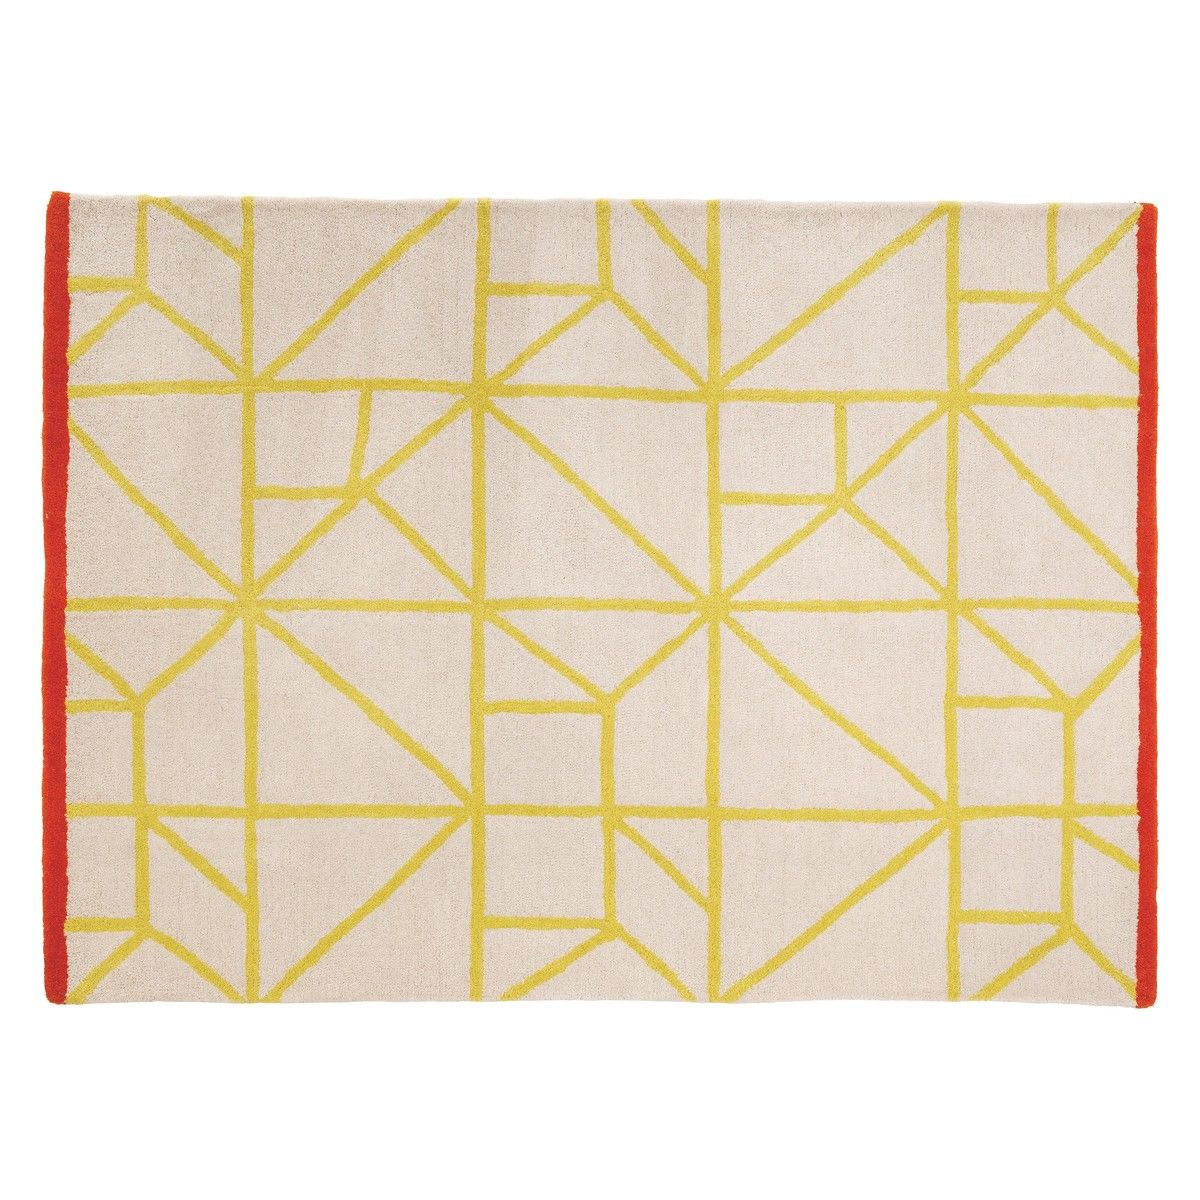 Kato Small Natural And Yellow Pile Rug 120 X 180cm Buy Now At Habitat Uk Rugs Rugs Uk Rugs And Mats